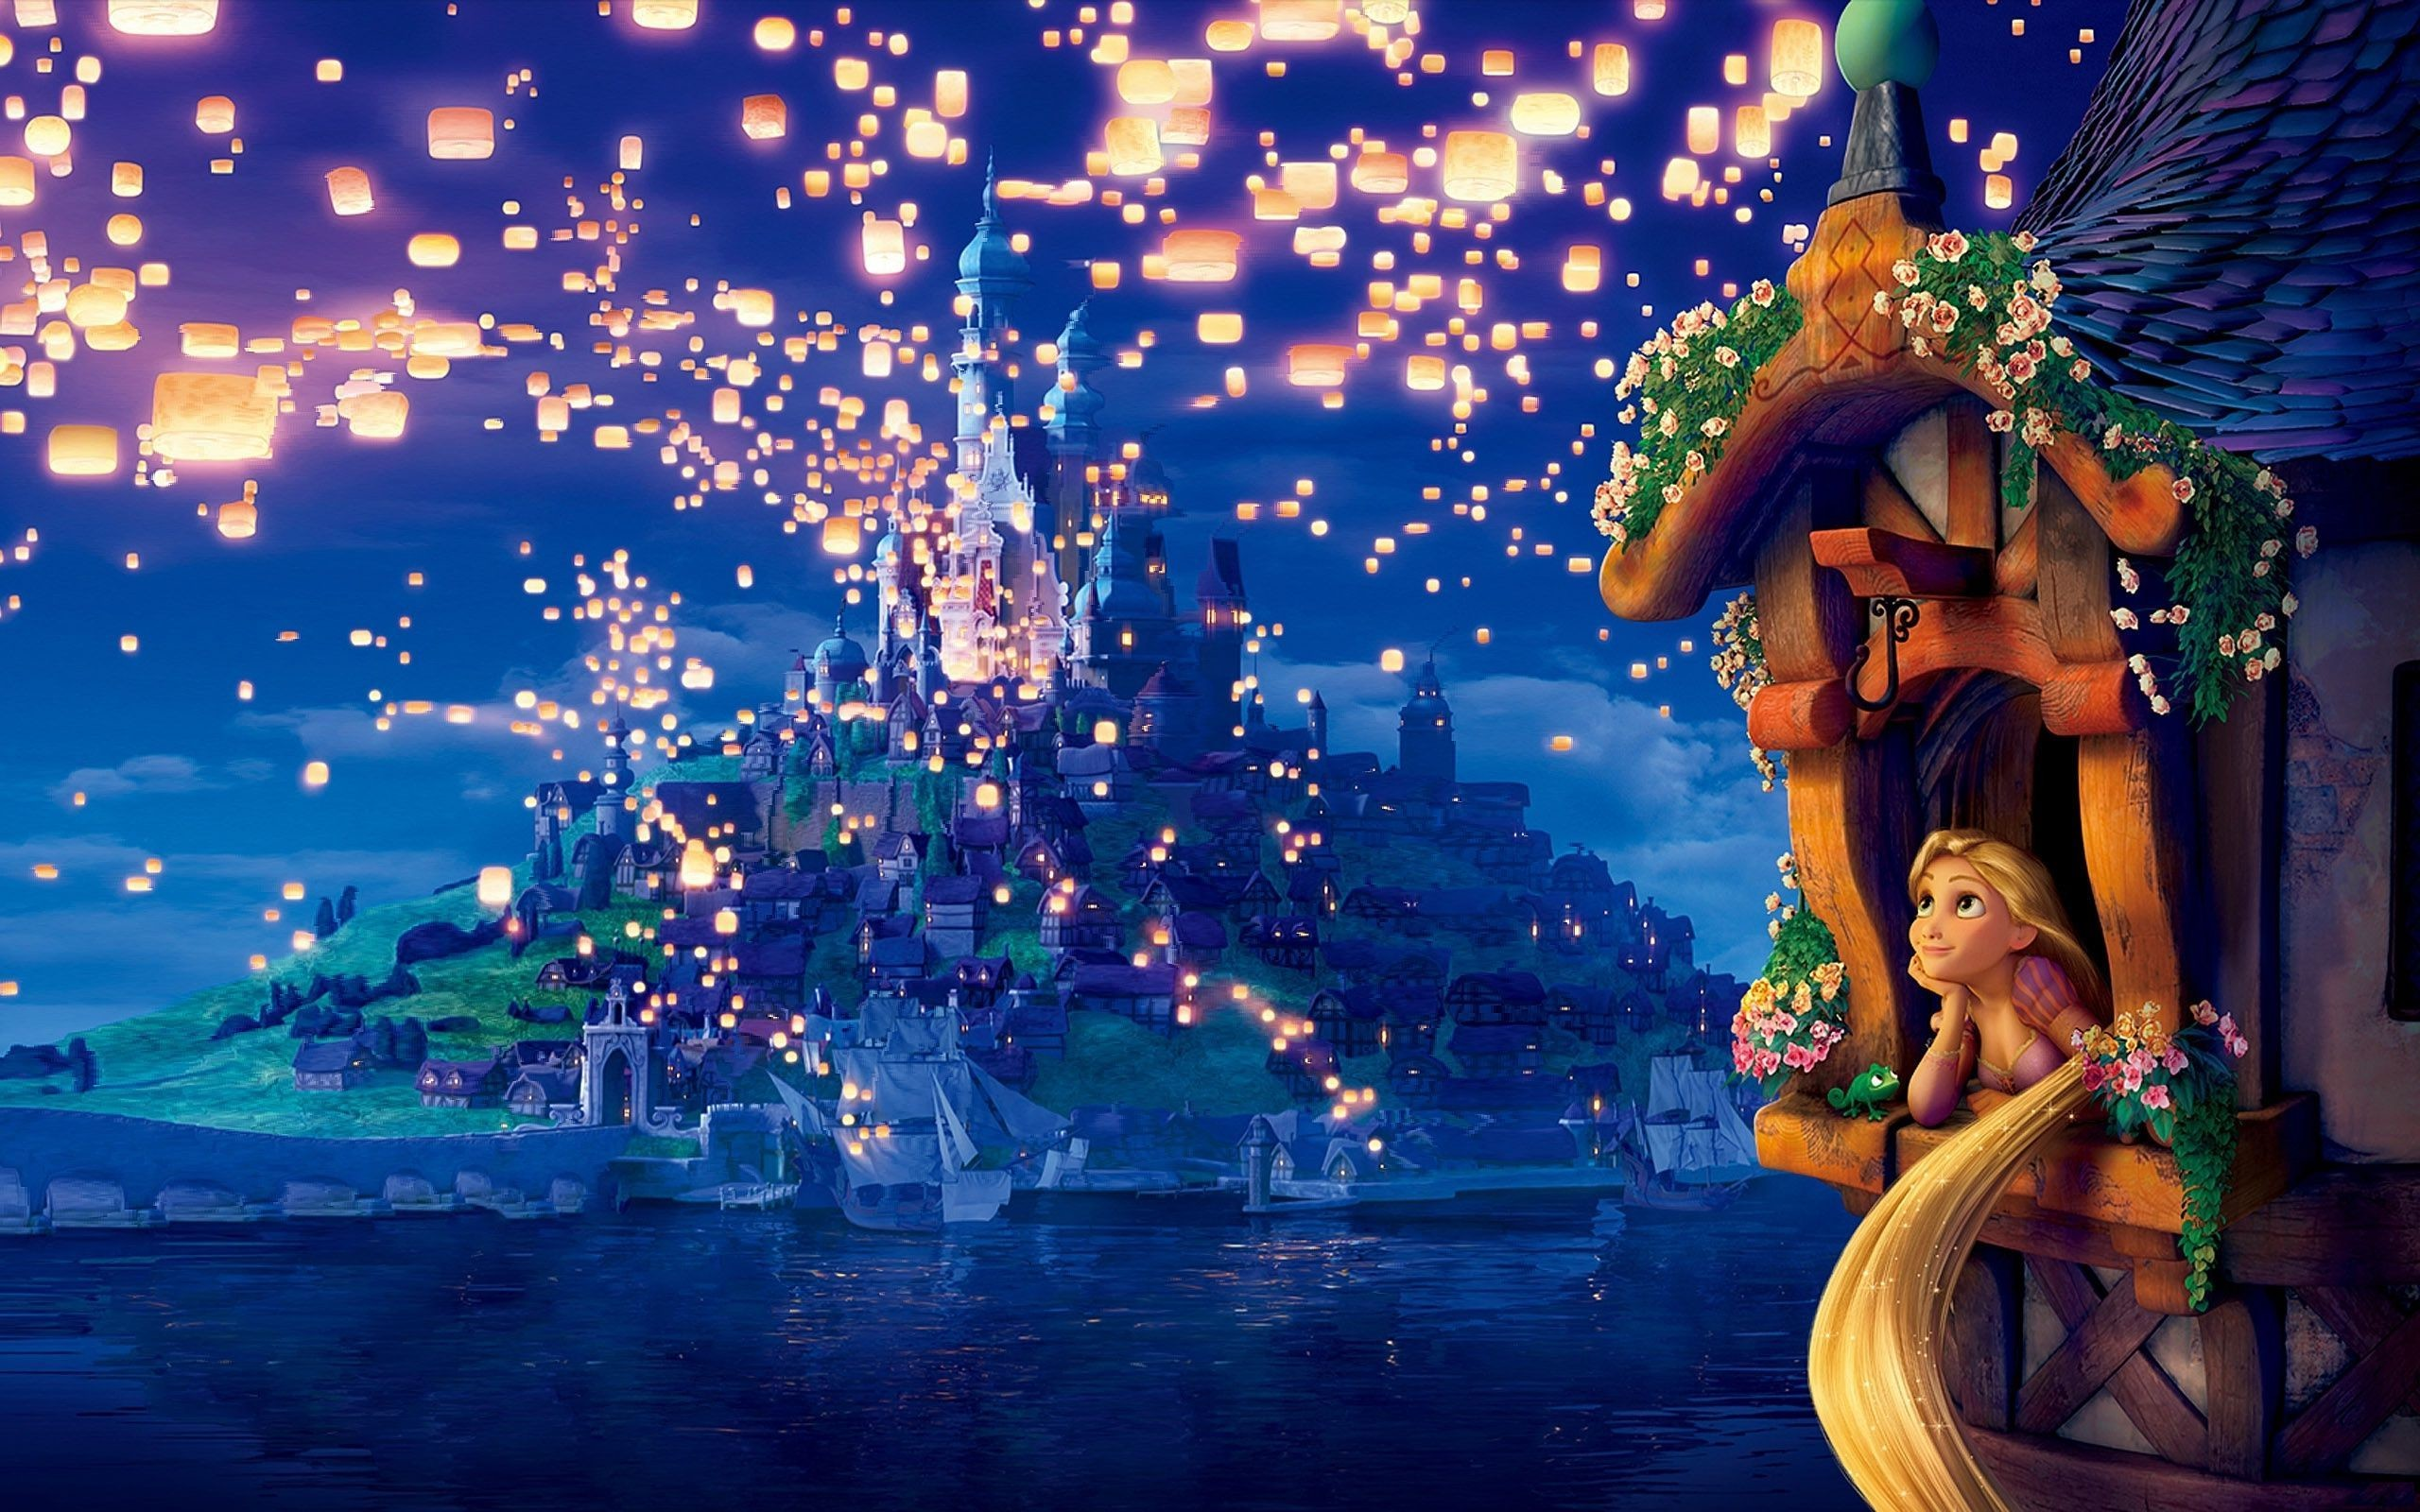 Tangled Wallpapers Backgrounds Pictures Photos HD 2015 #Movies